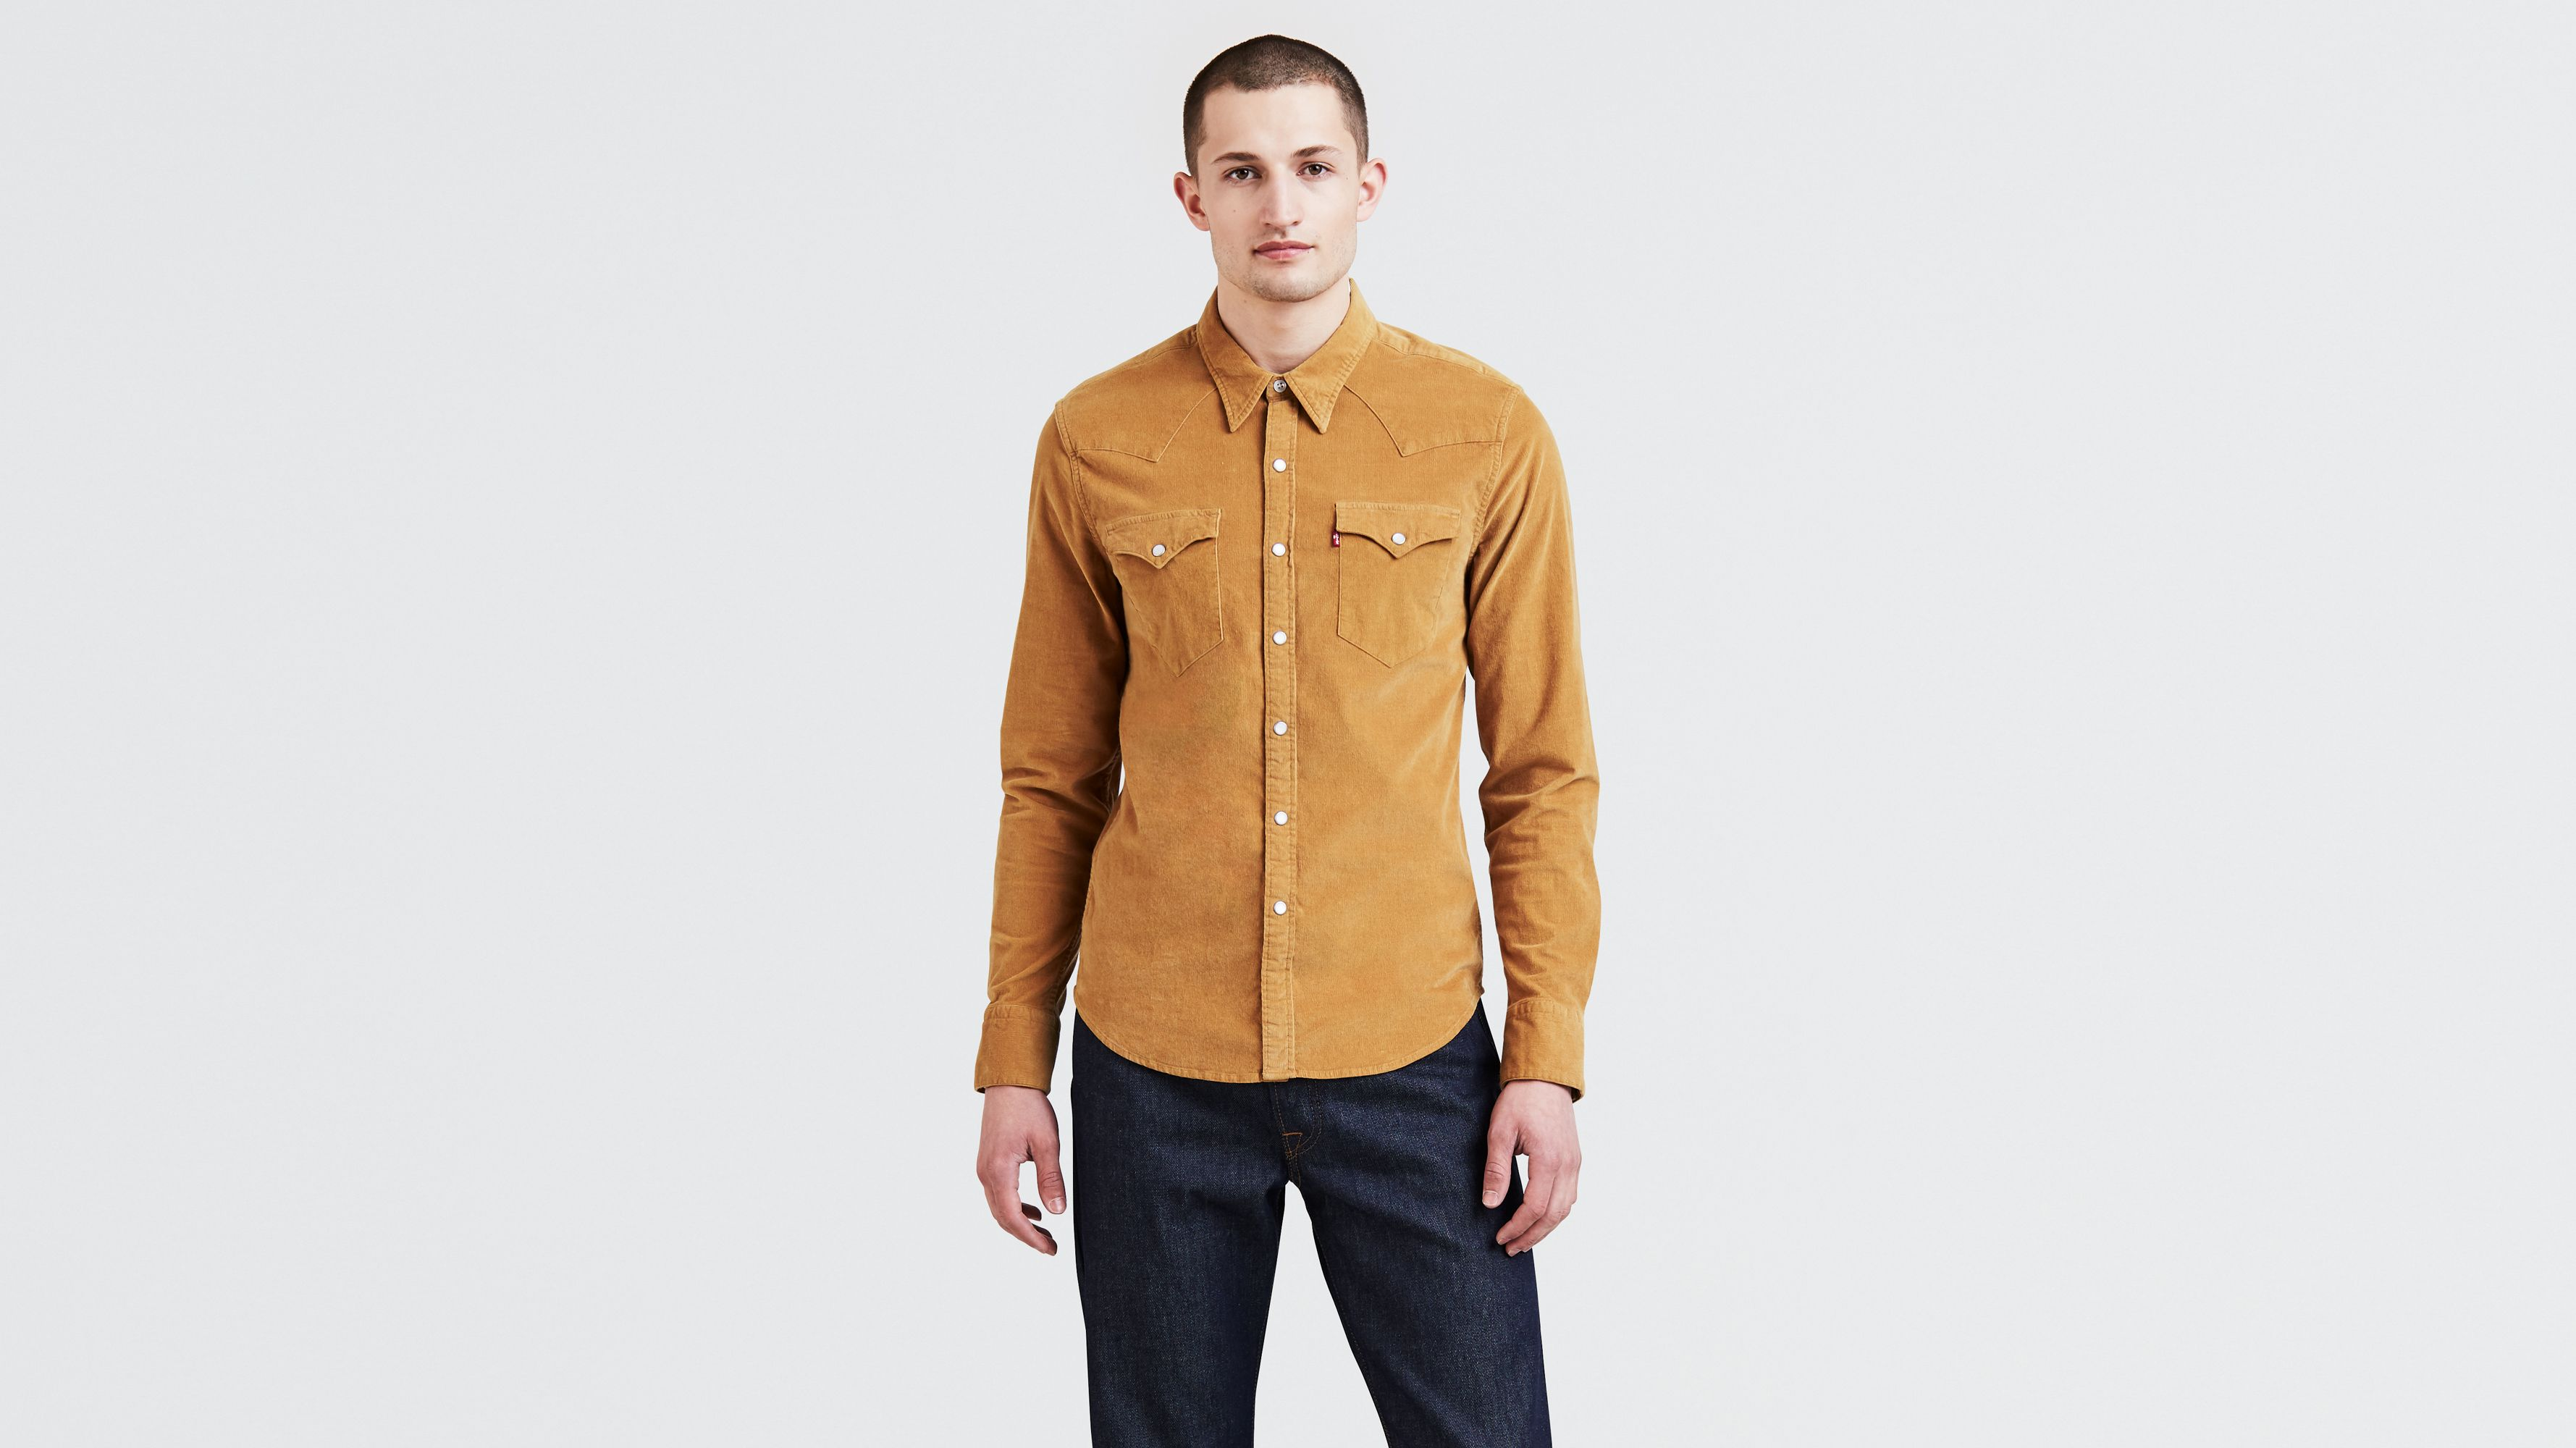 X-Future Men Vintage Regular Fit Button Down Flap Pockets Long-Sleeve Corduroy Shirts